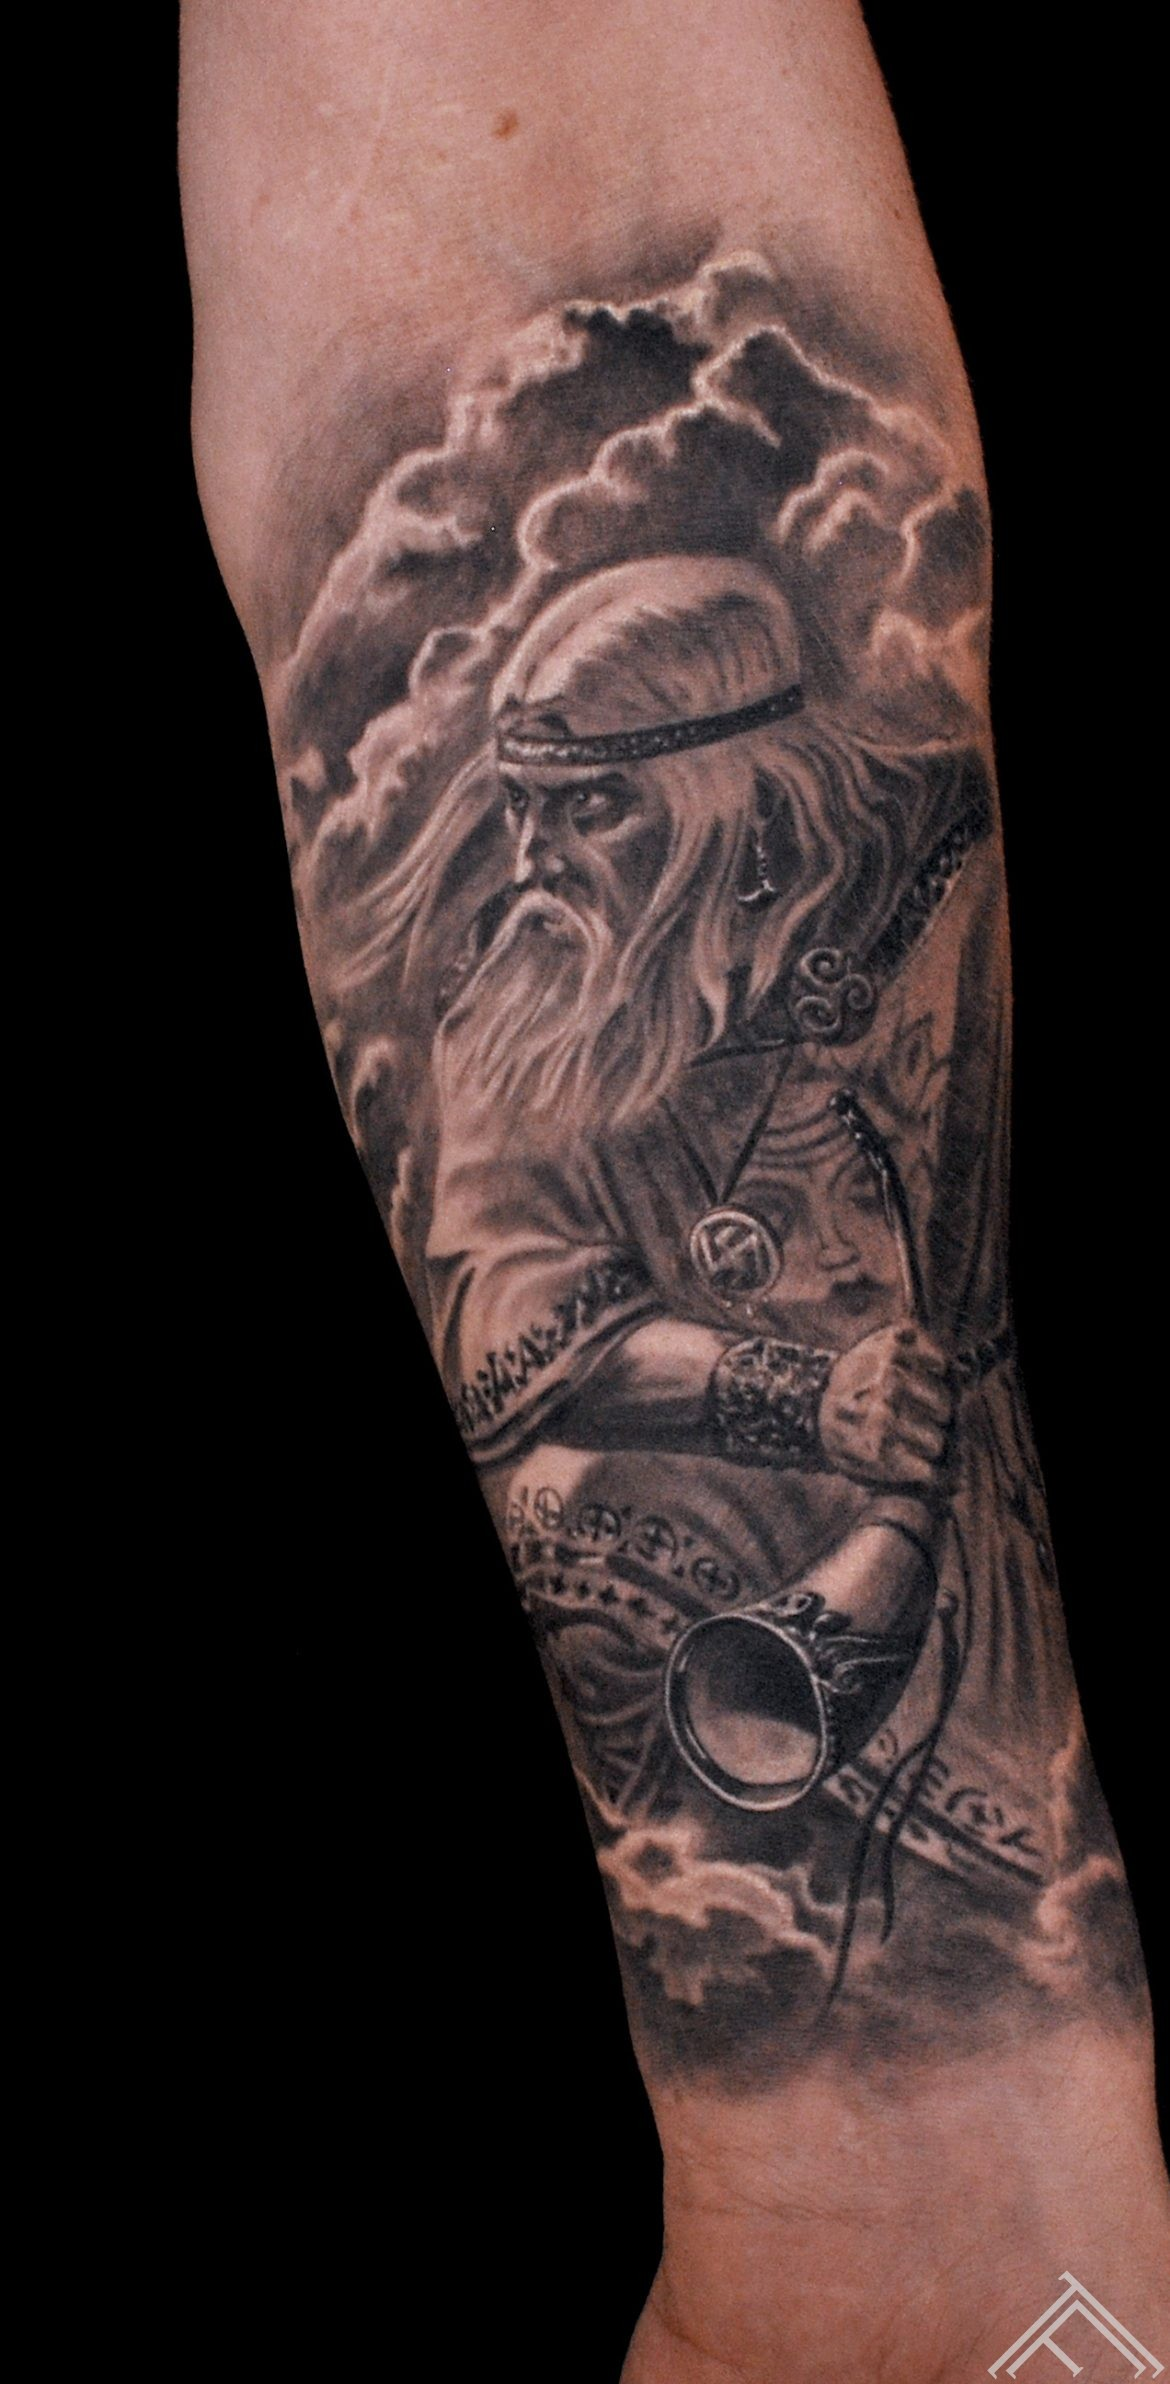 martins_silins_tattoofrequency